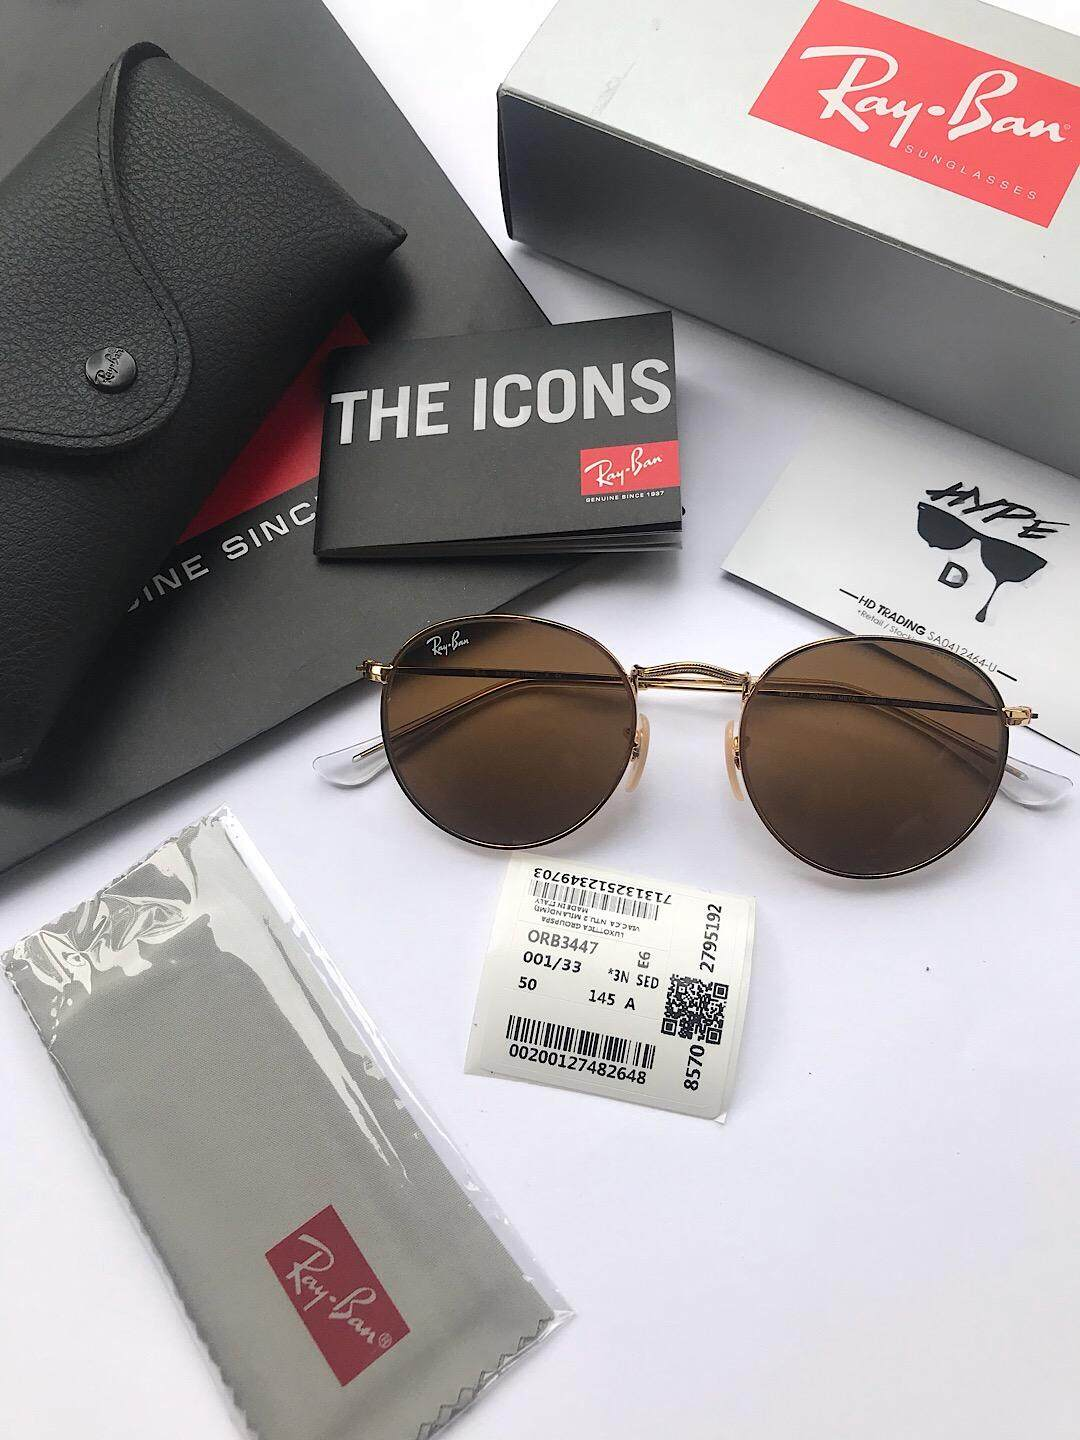 40bde5d1a Ray-Ban Men Sunglasses price in Malaysia - Best Ray-Ban Men ...